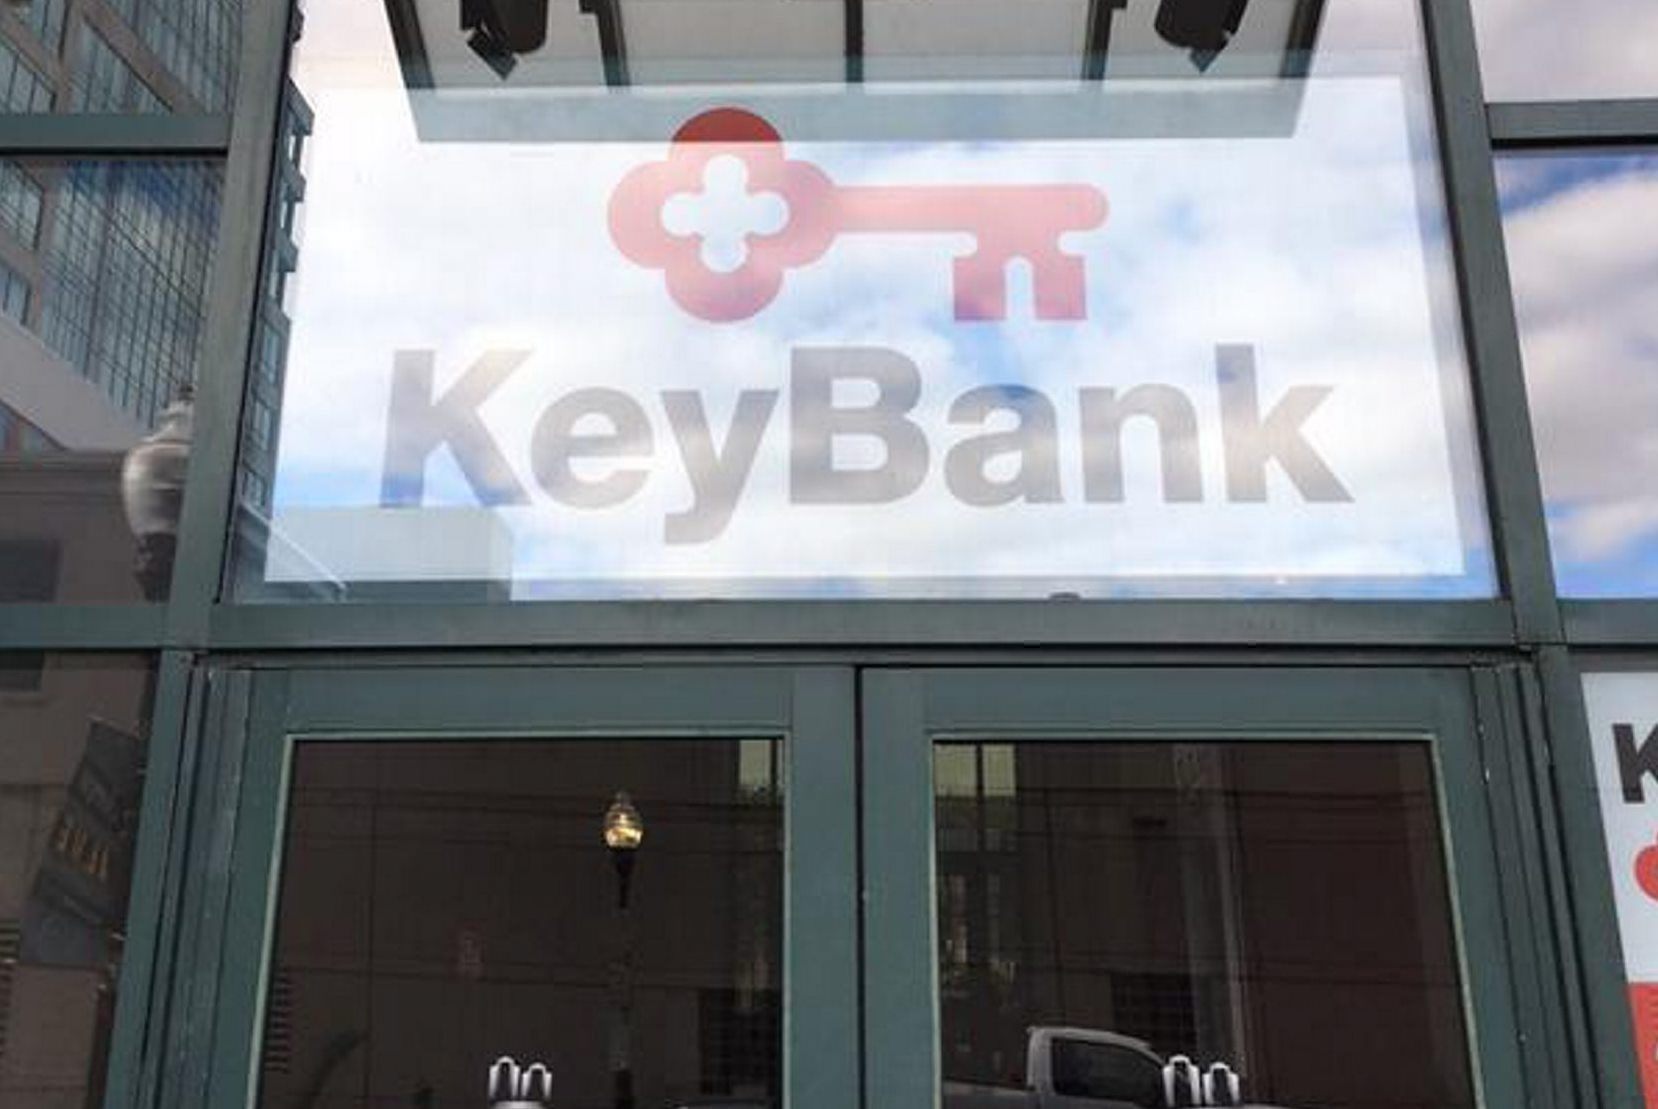 KeyCorp.'s $4.1 billion purchase of First Niagara Financial Group will turn it into an upstate banking powerhouse and a strong rival to another Buffalo bank, M&T Bank, across upstate New York.